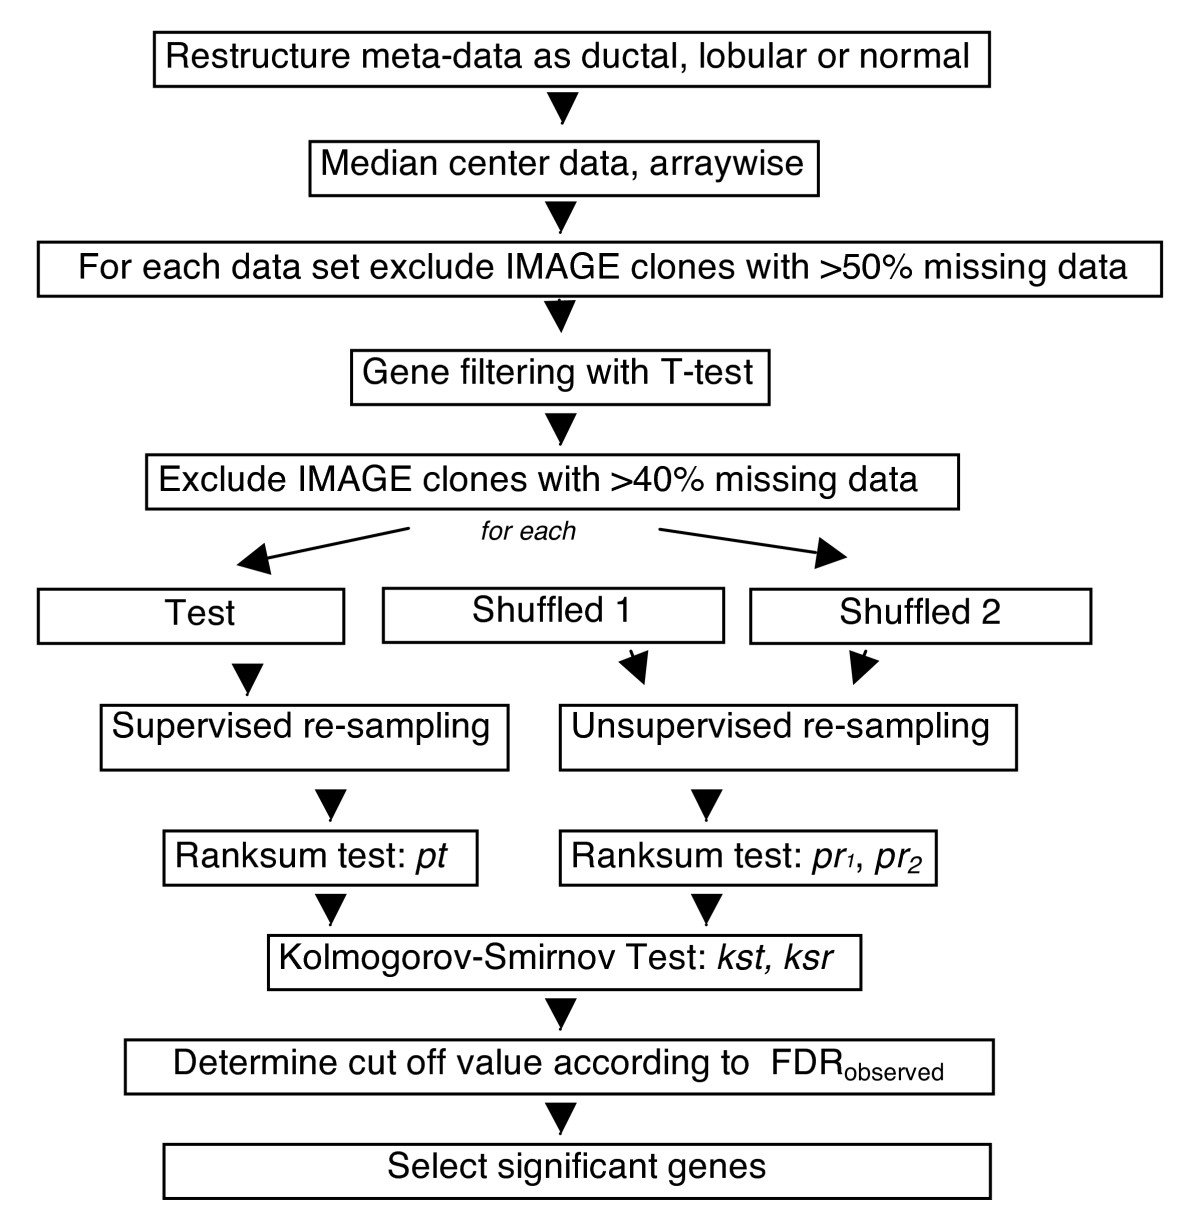 https://static-content.springer.com/image/art%3A10.1186%2F1471-2407-8-396/MediaObjects/12885_2008_Article_1334_Fig1_HTML.jpg